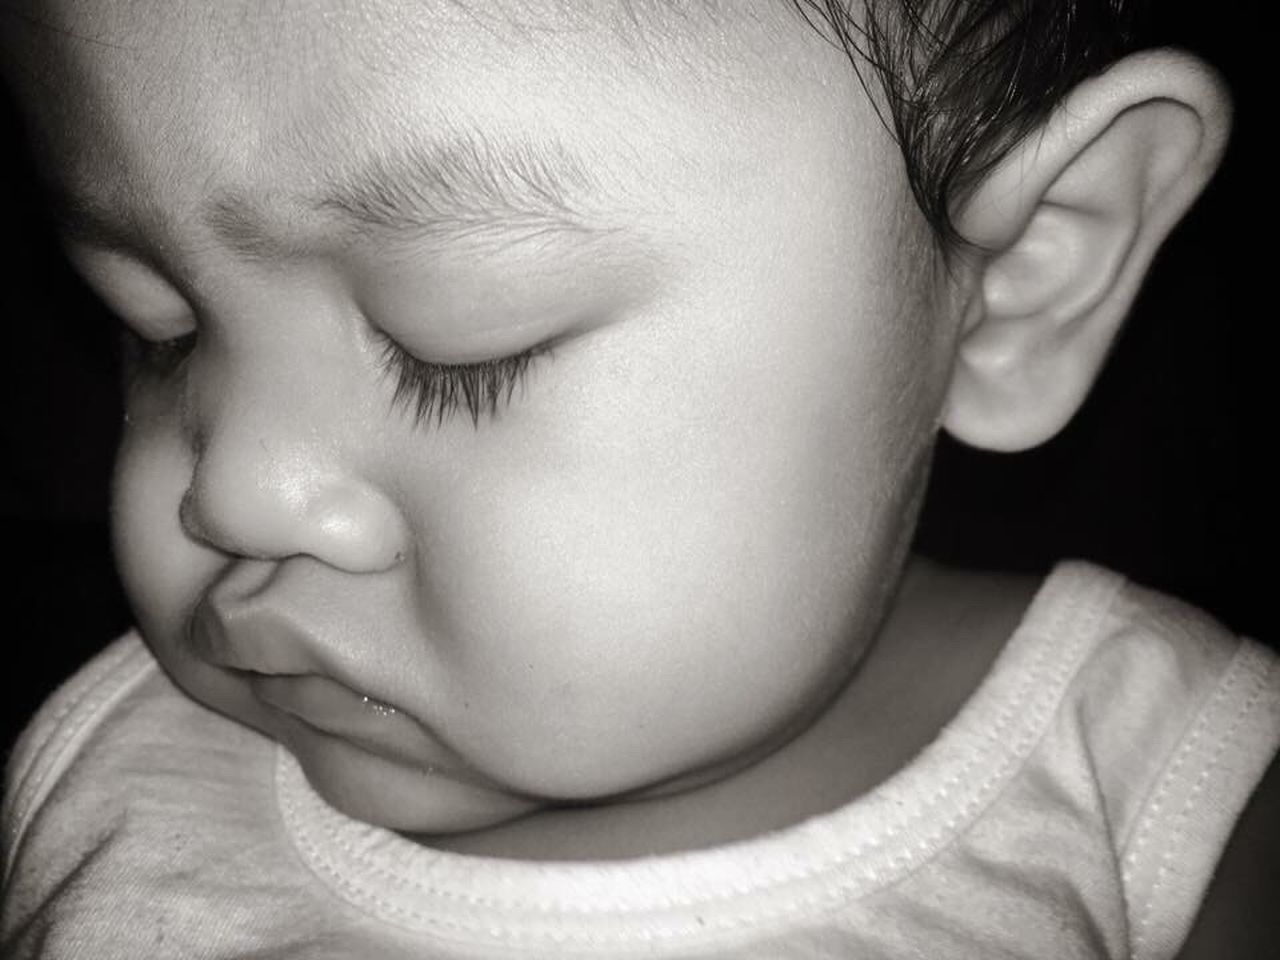 CLOSE-UP OF BABY GIRL